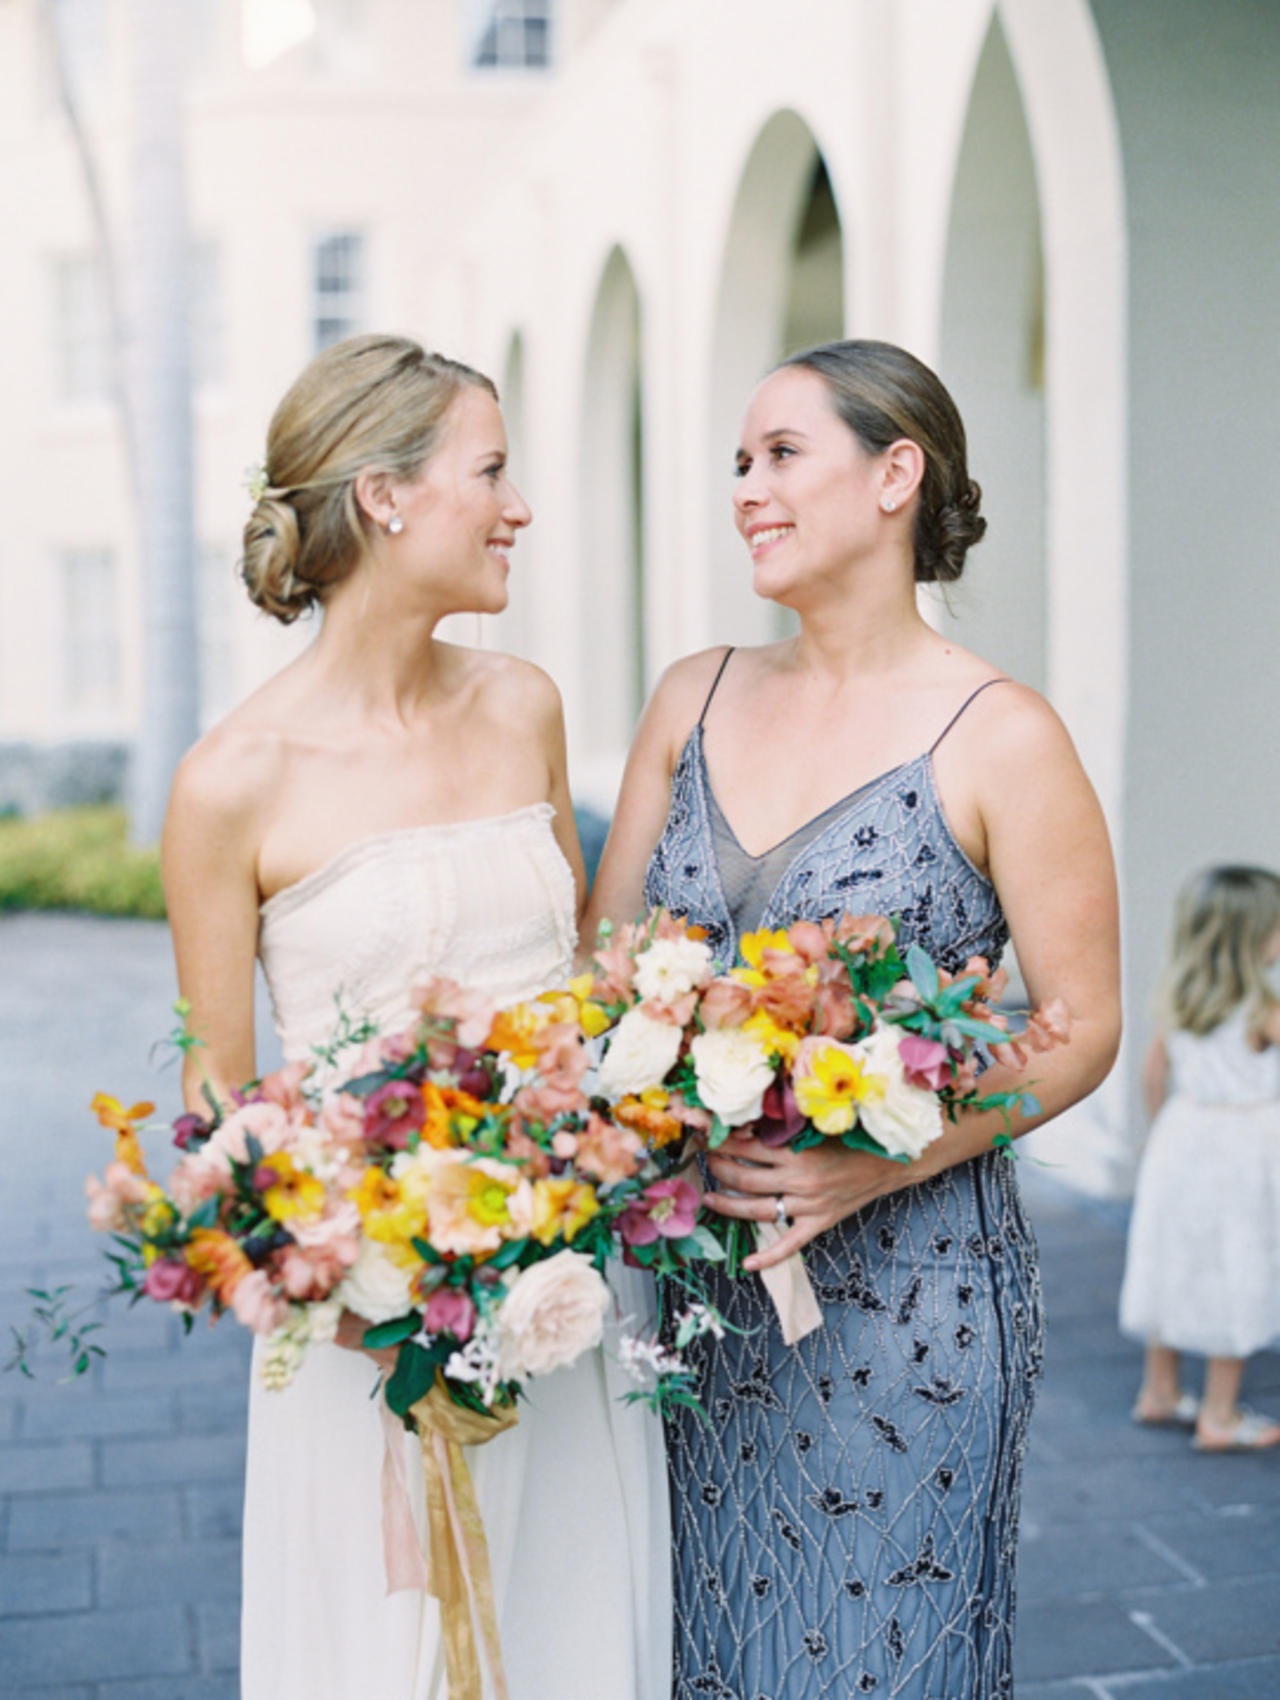 How to Navigate Being the Maid of Honor While Also Planning Your Own Wedding